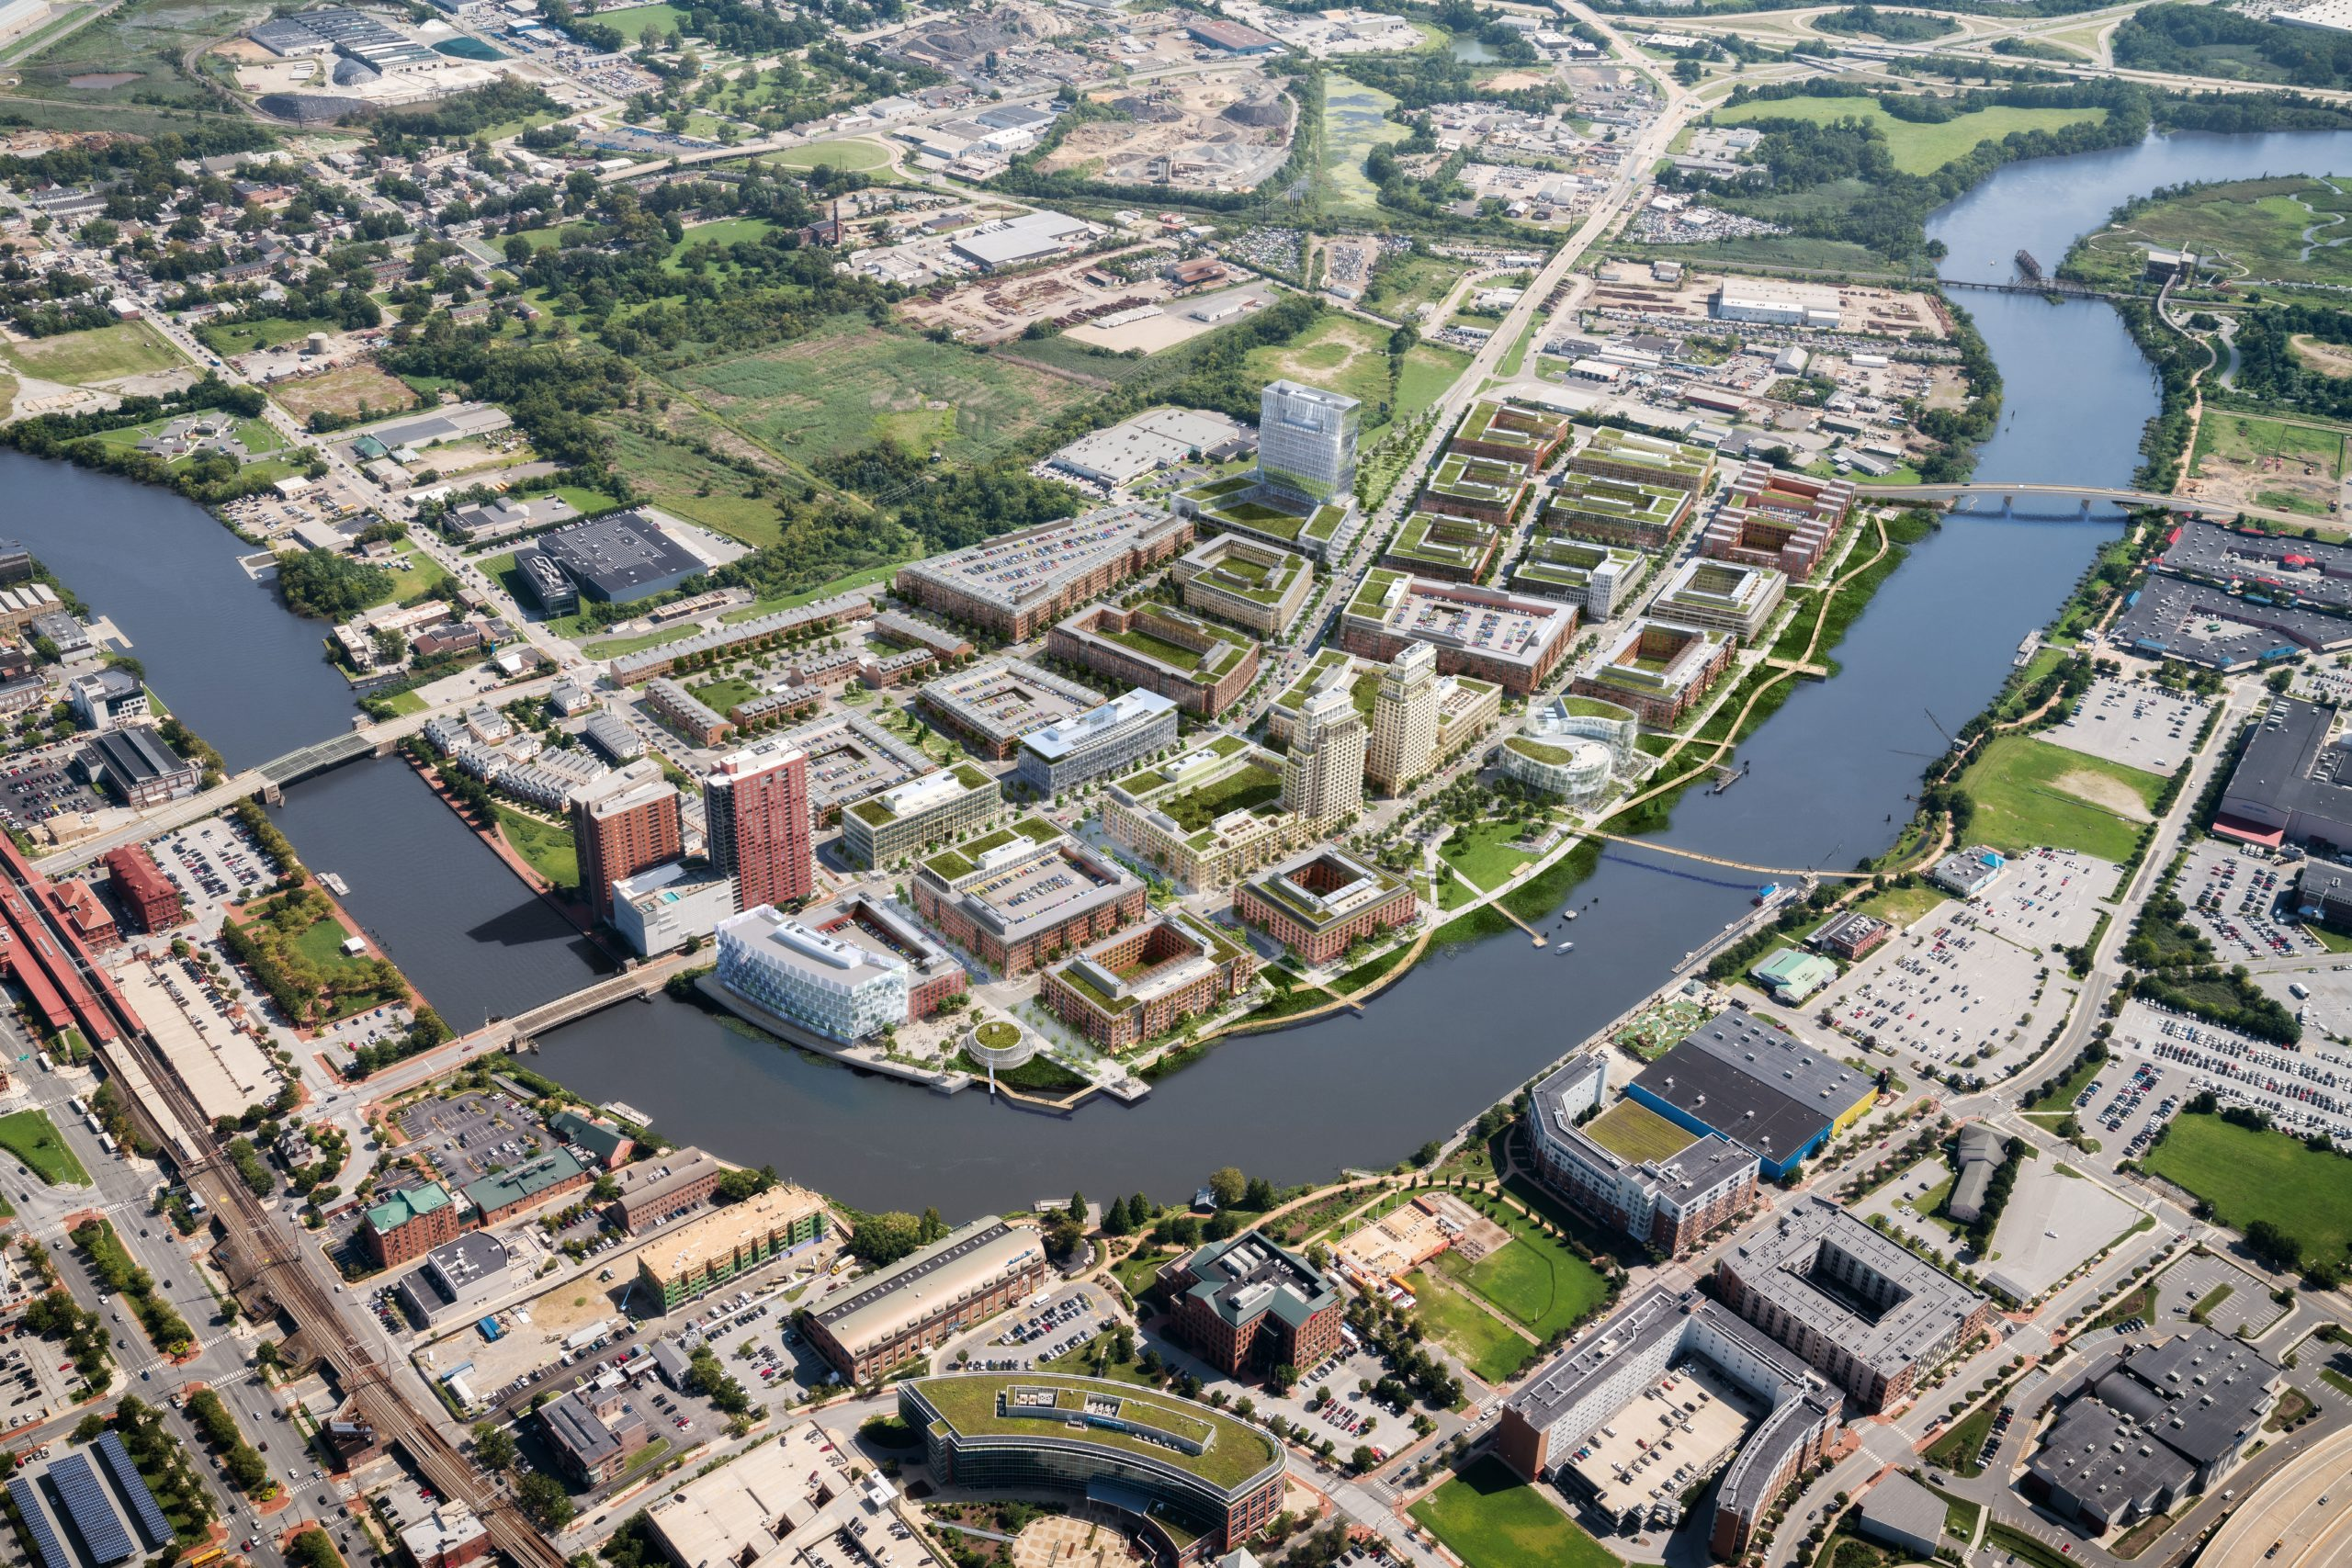 Riverfront Development Corporation Announces Plans for East Side Expansion Beginning This Summer